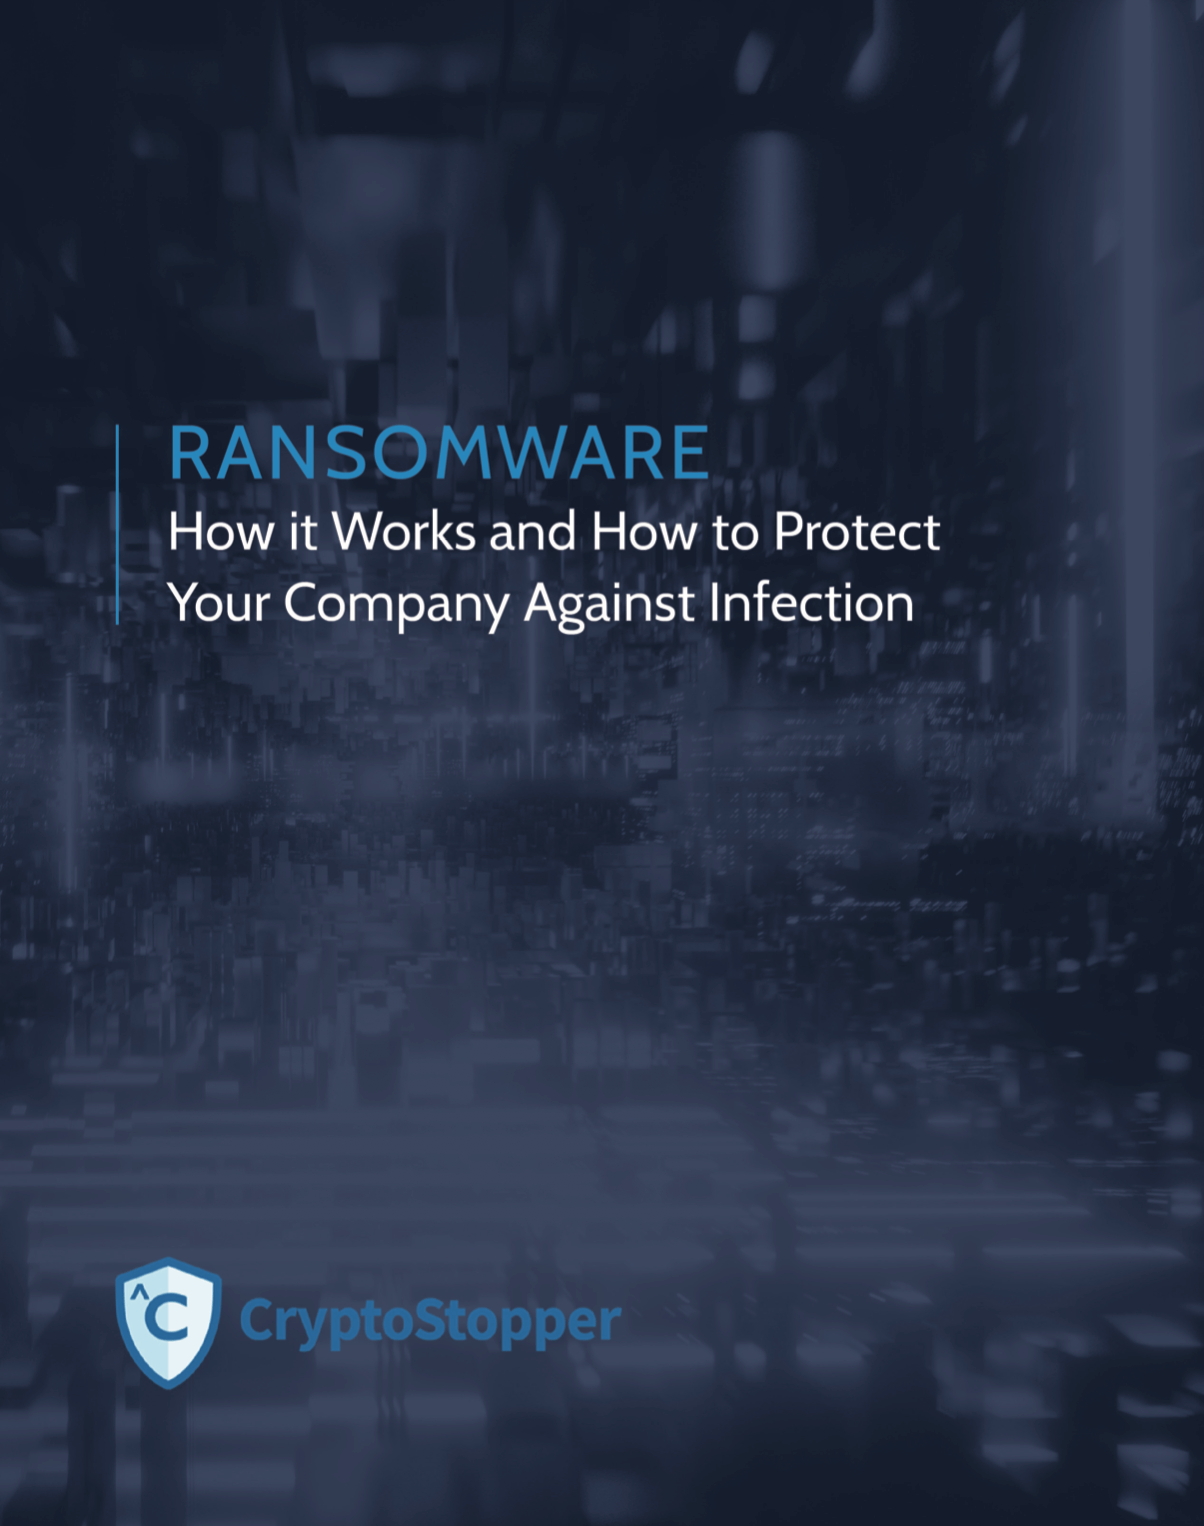 Ransomare_The-Complete-Guide_CryptoStopper